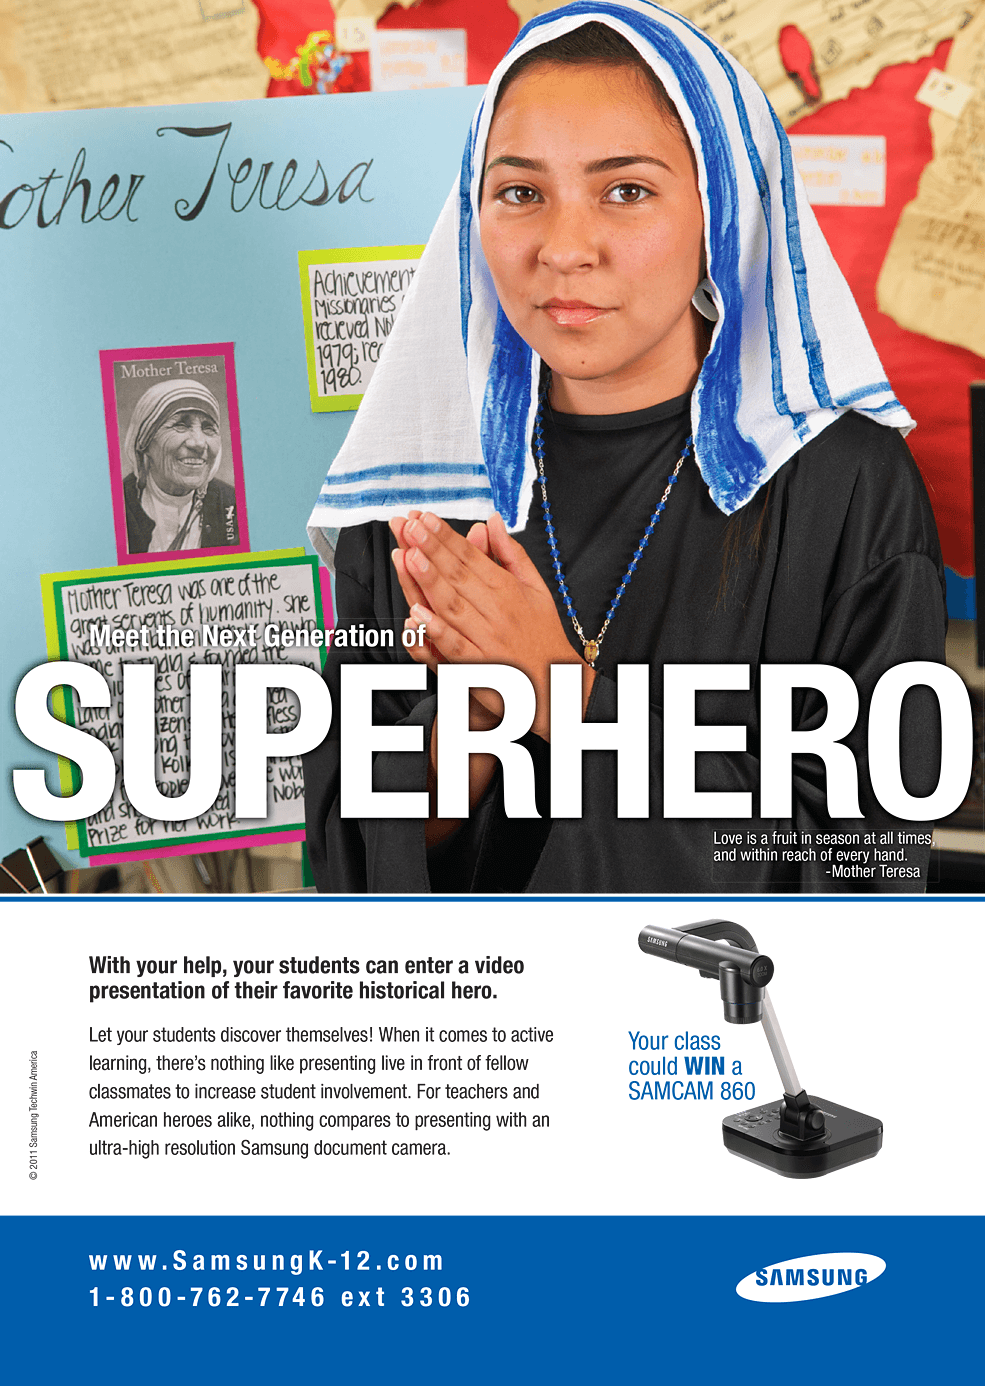 Samsung - Superhero - Mother Teresa - Integrated Marketing